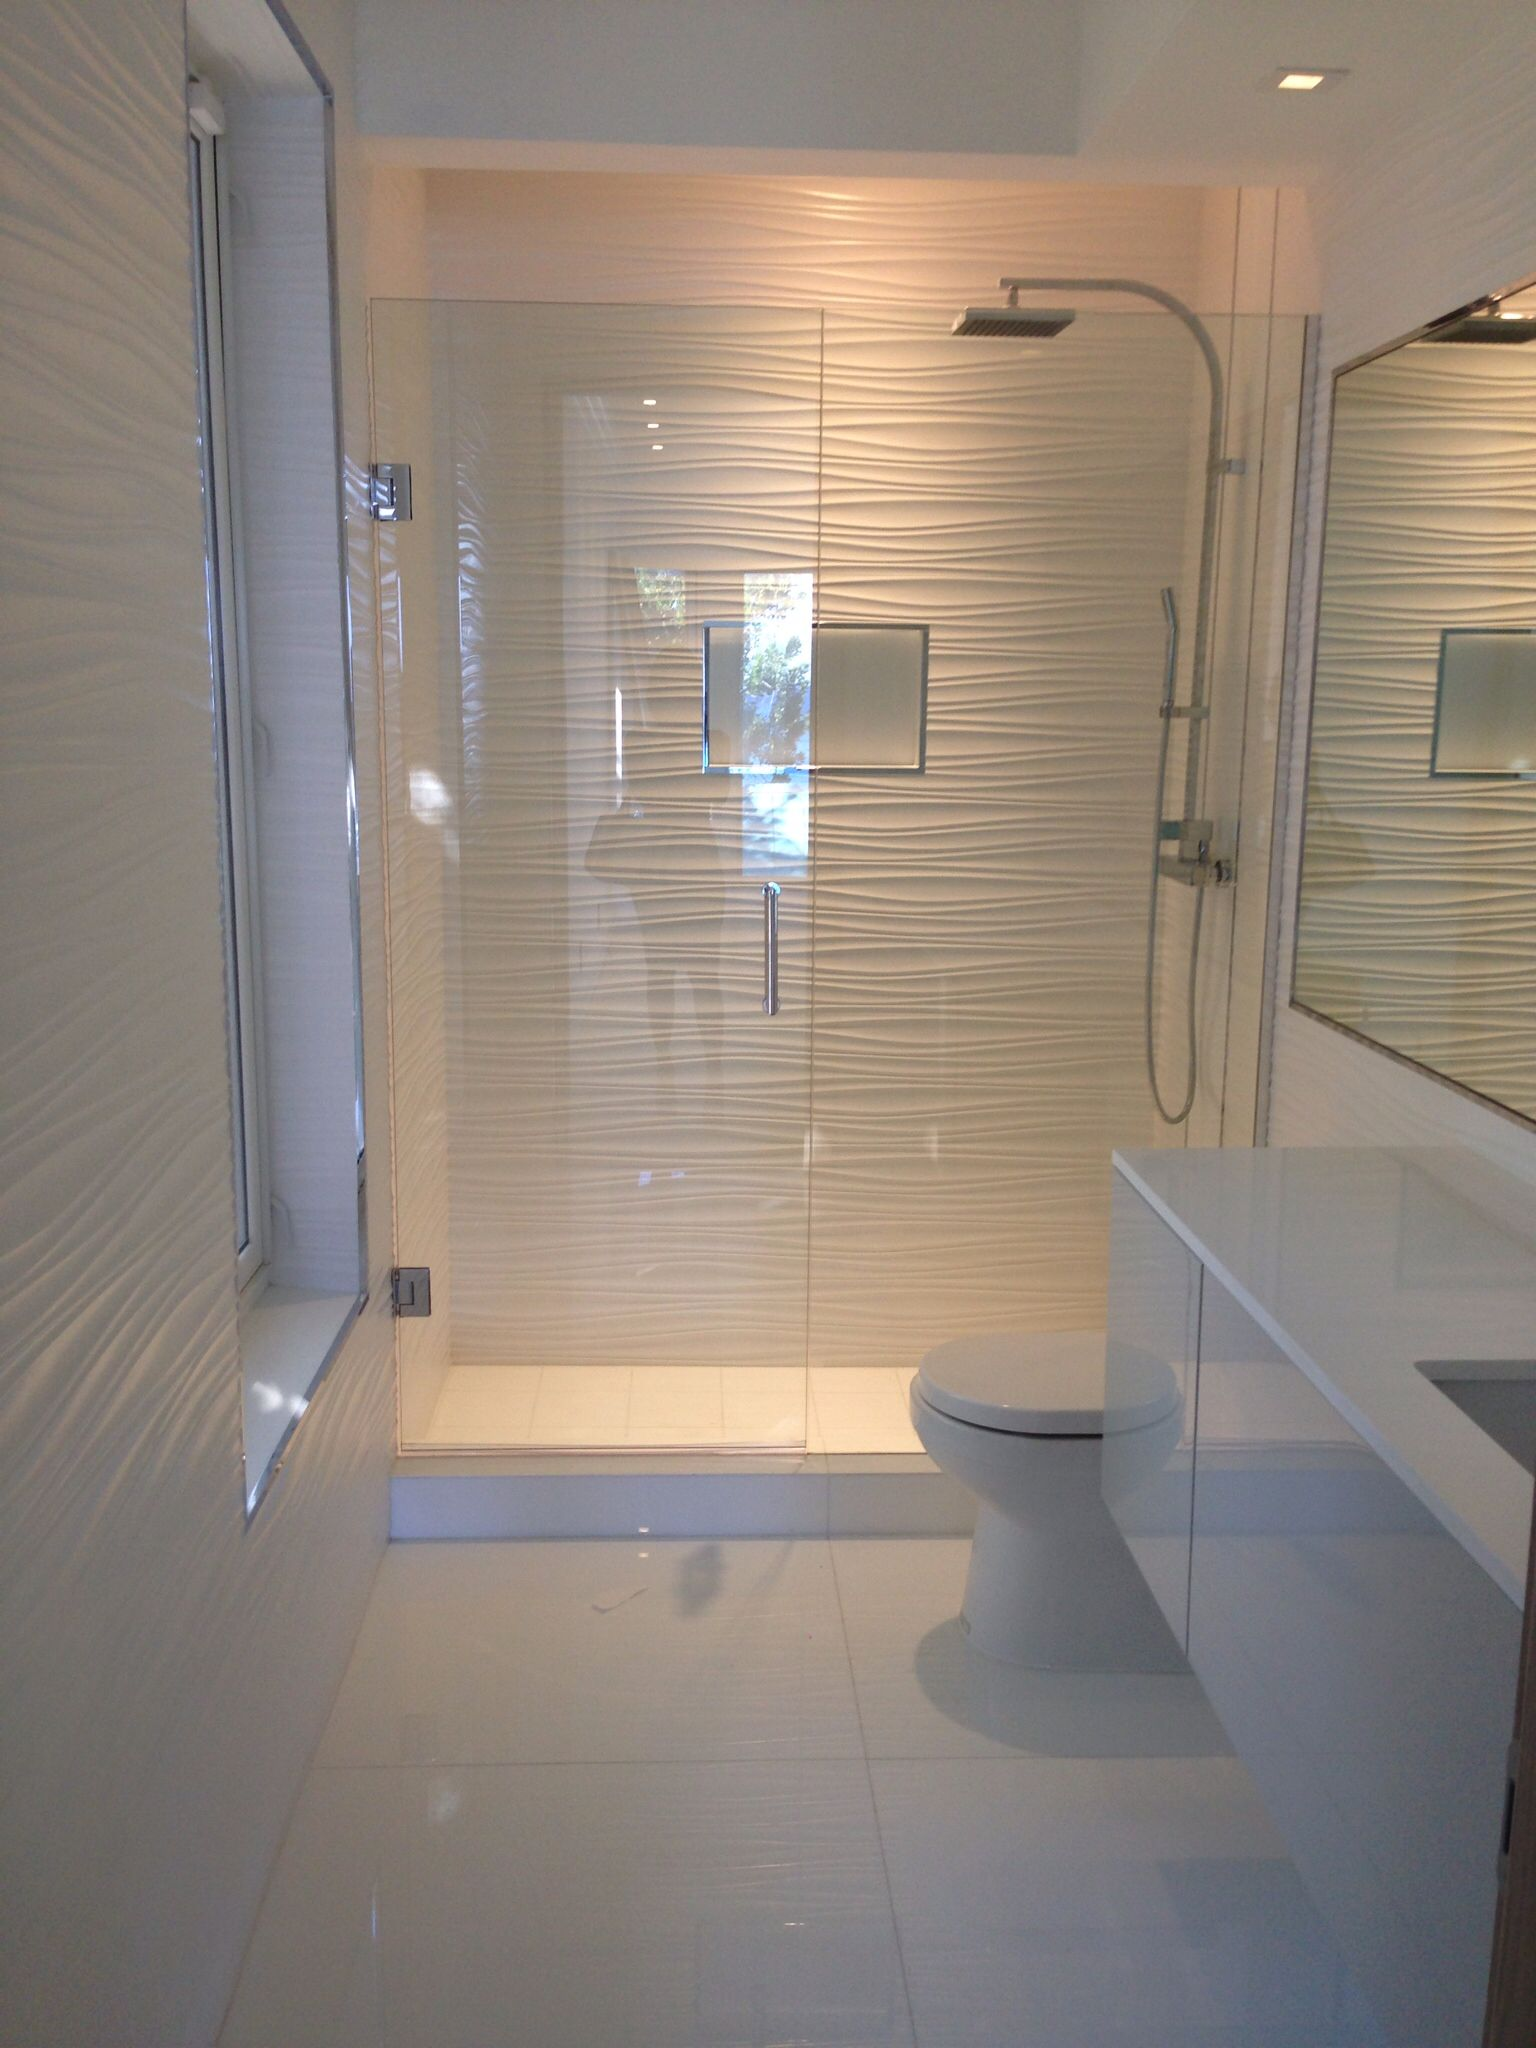 Textured bathroom walls - All White Bathroom Wall Tile Toilet Vanity And Shower Column By Porcelanosa